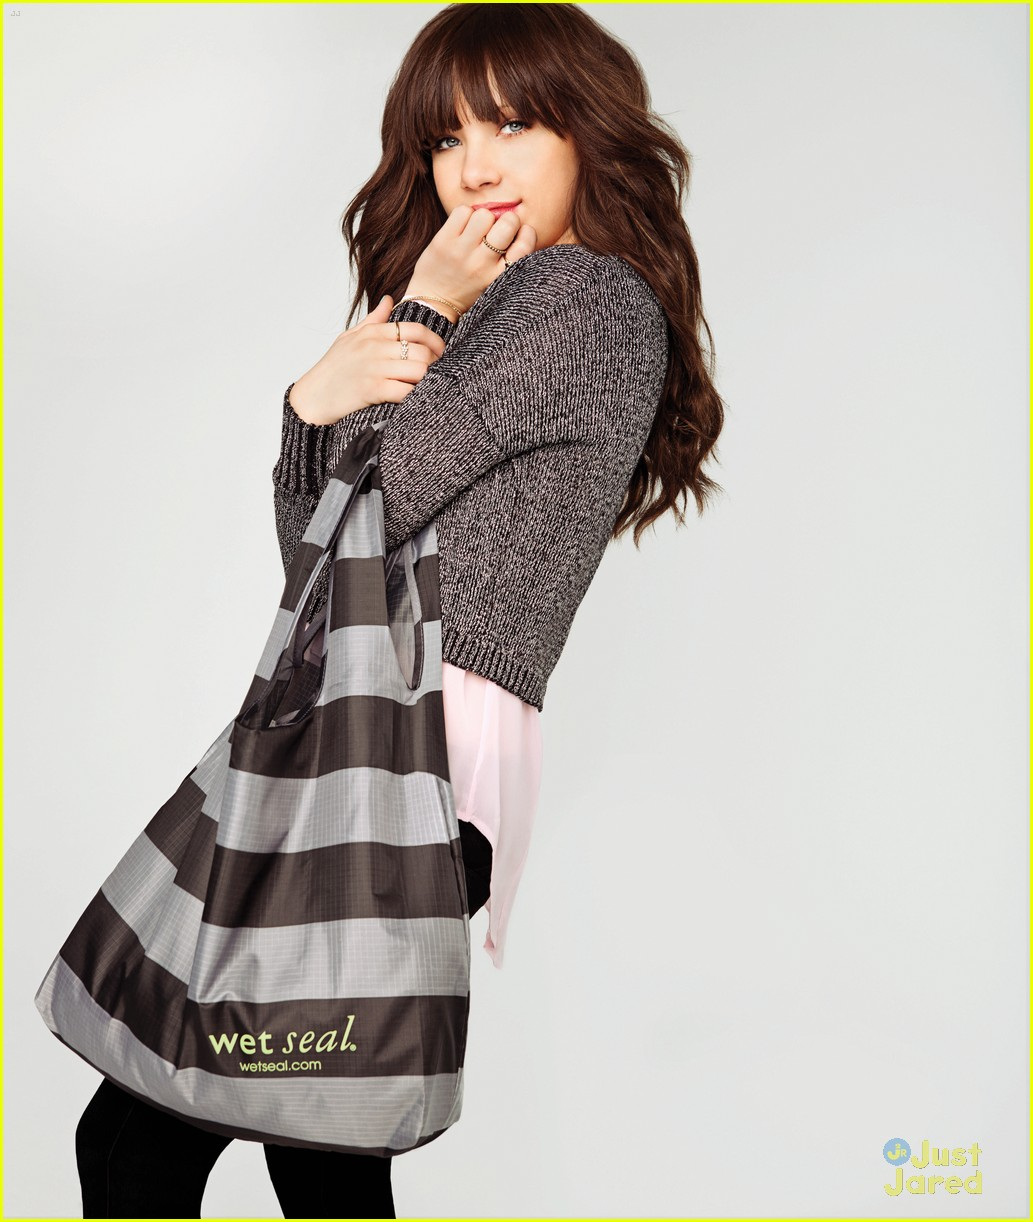 Wet seal clothing online